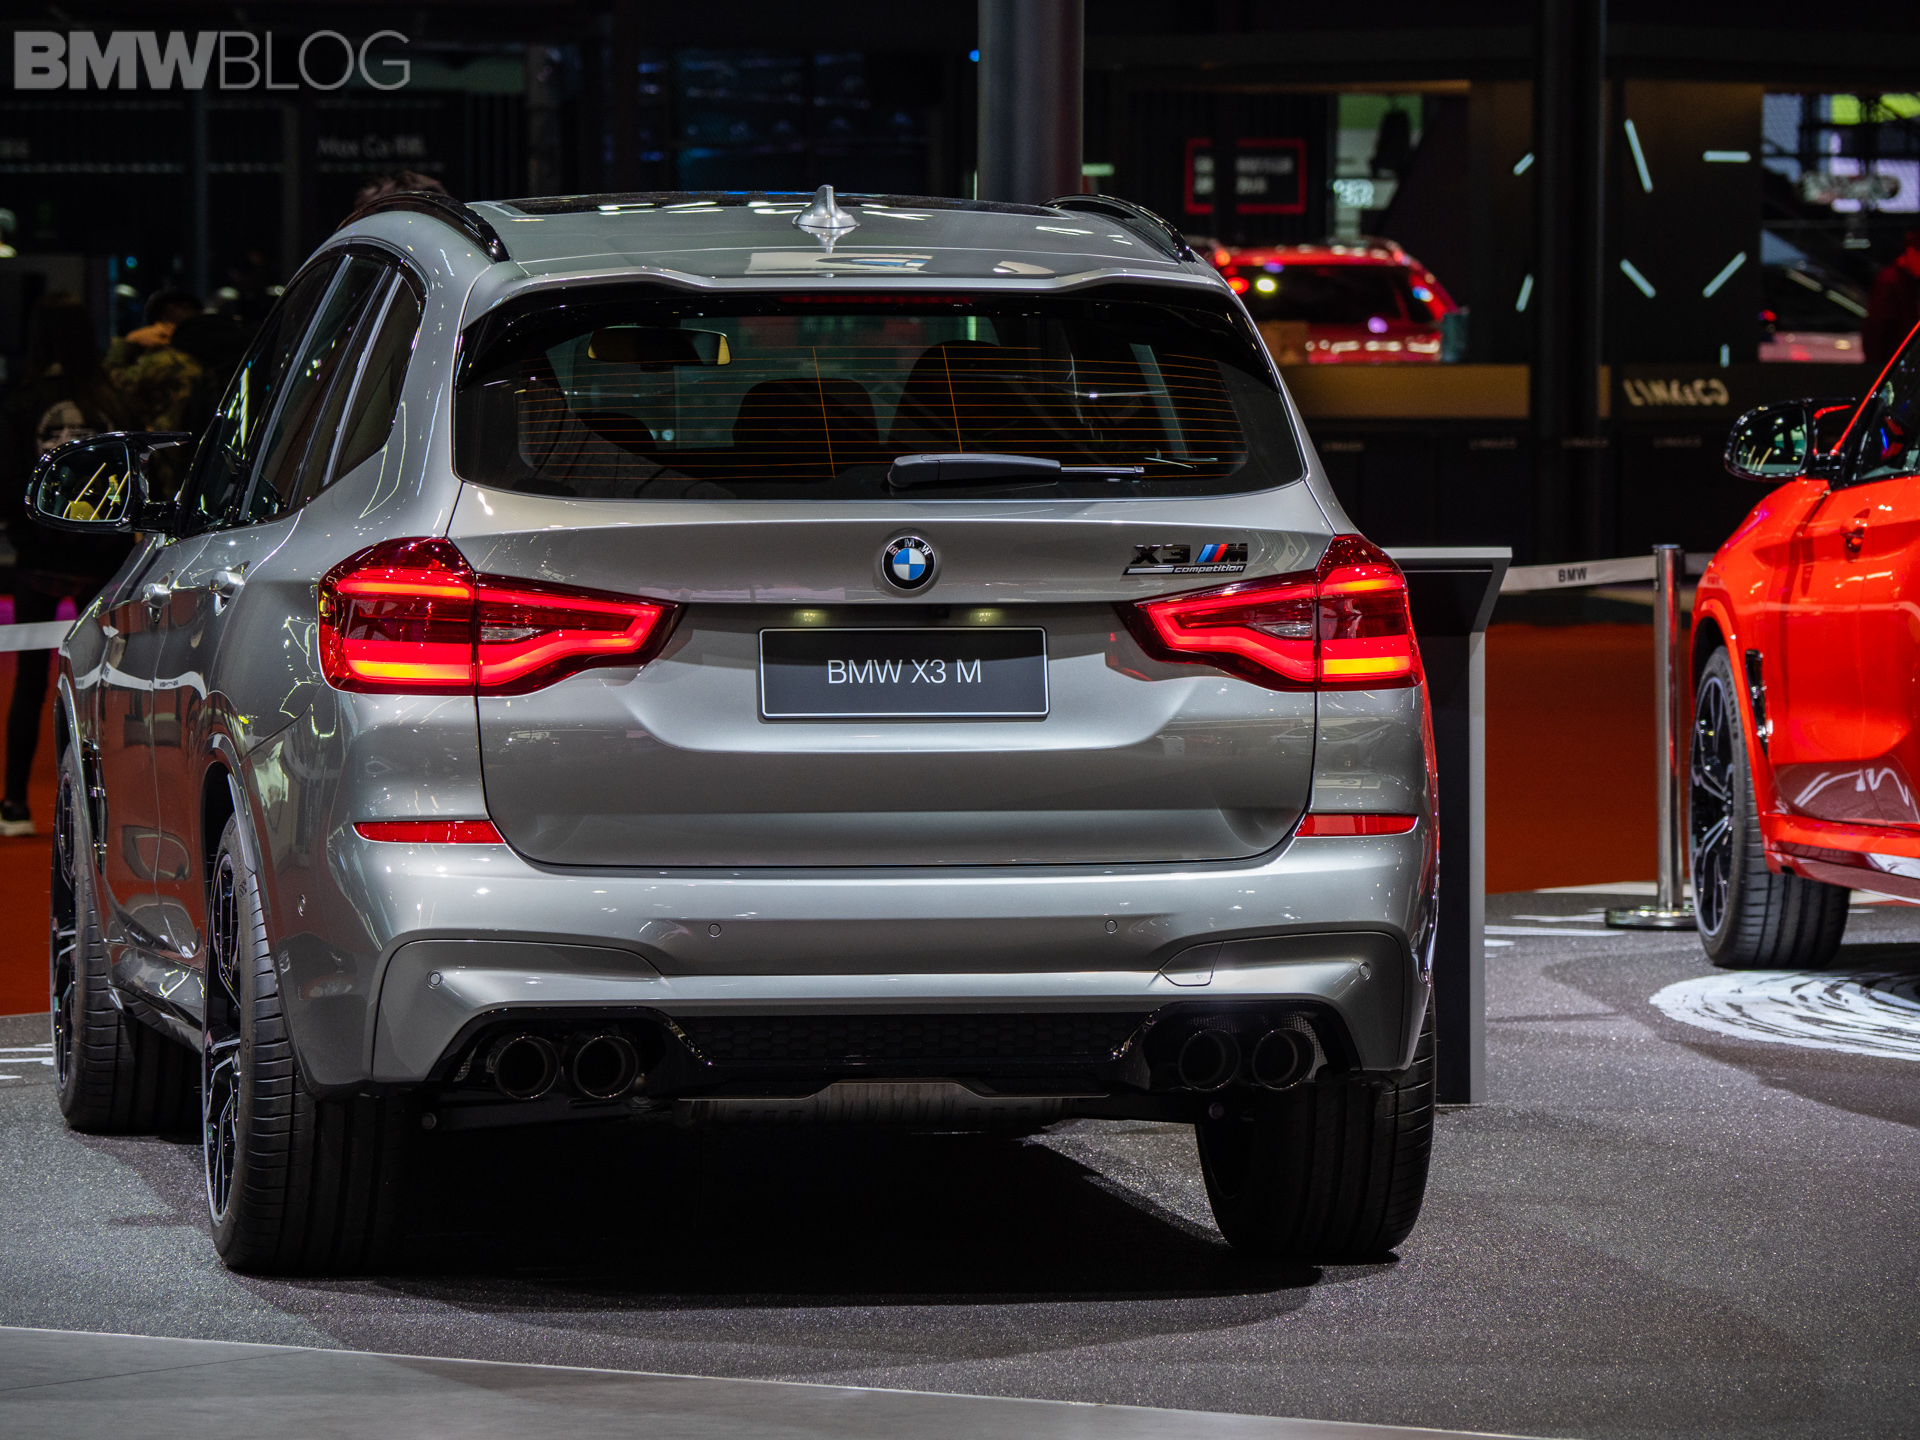 2019 Shanghai Auto Show Live Video Of The Bmw X3 M Competition